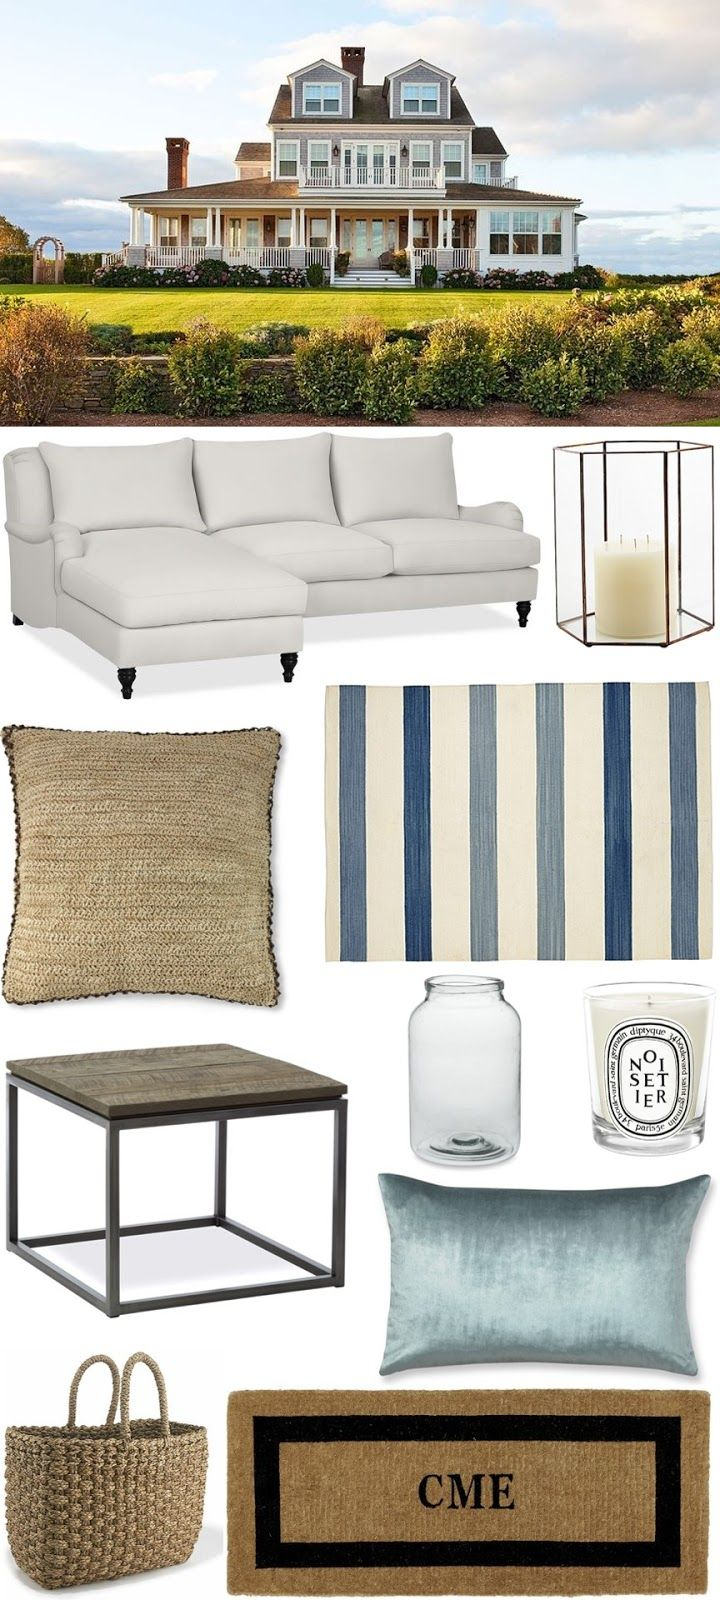 Best Images About Beach Elegance On Pinterest See Best Ideas - Beach house living room furniture